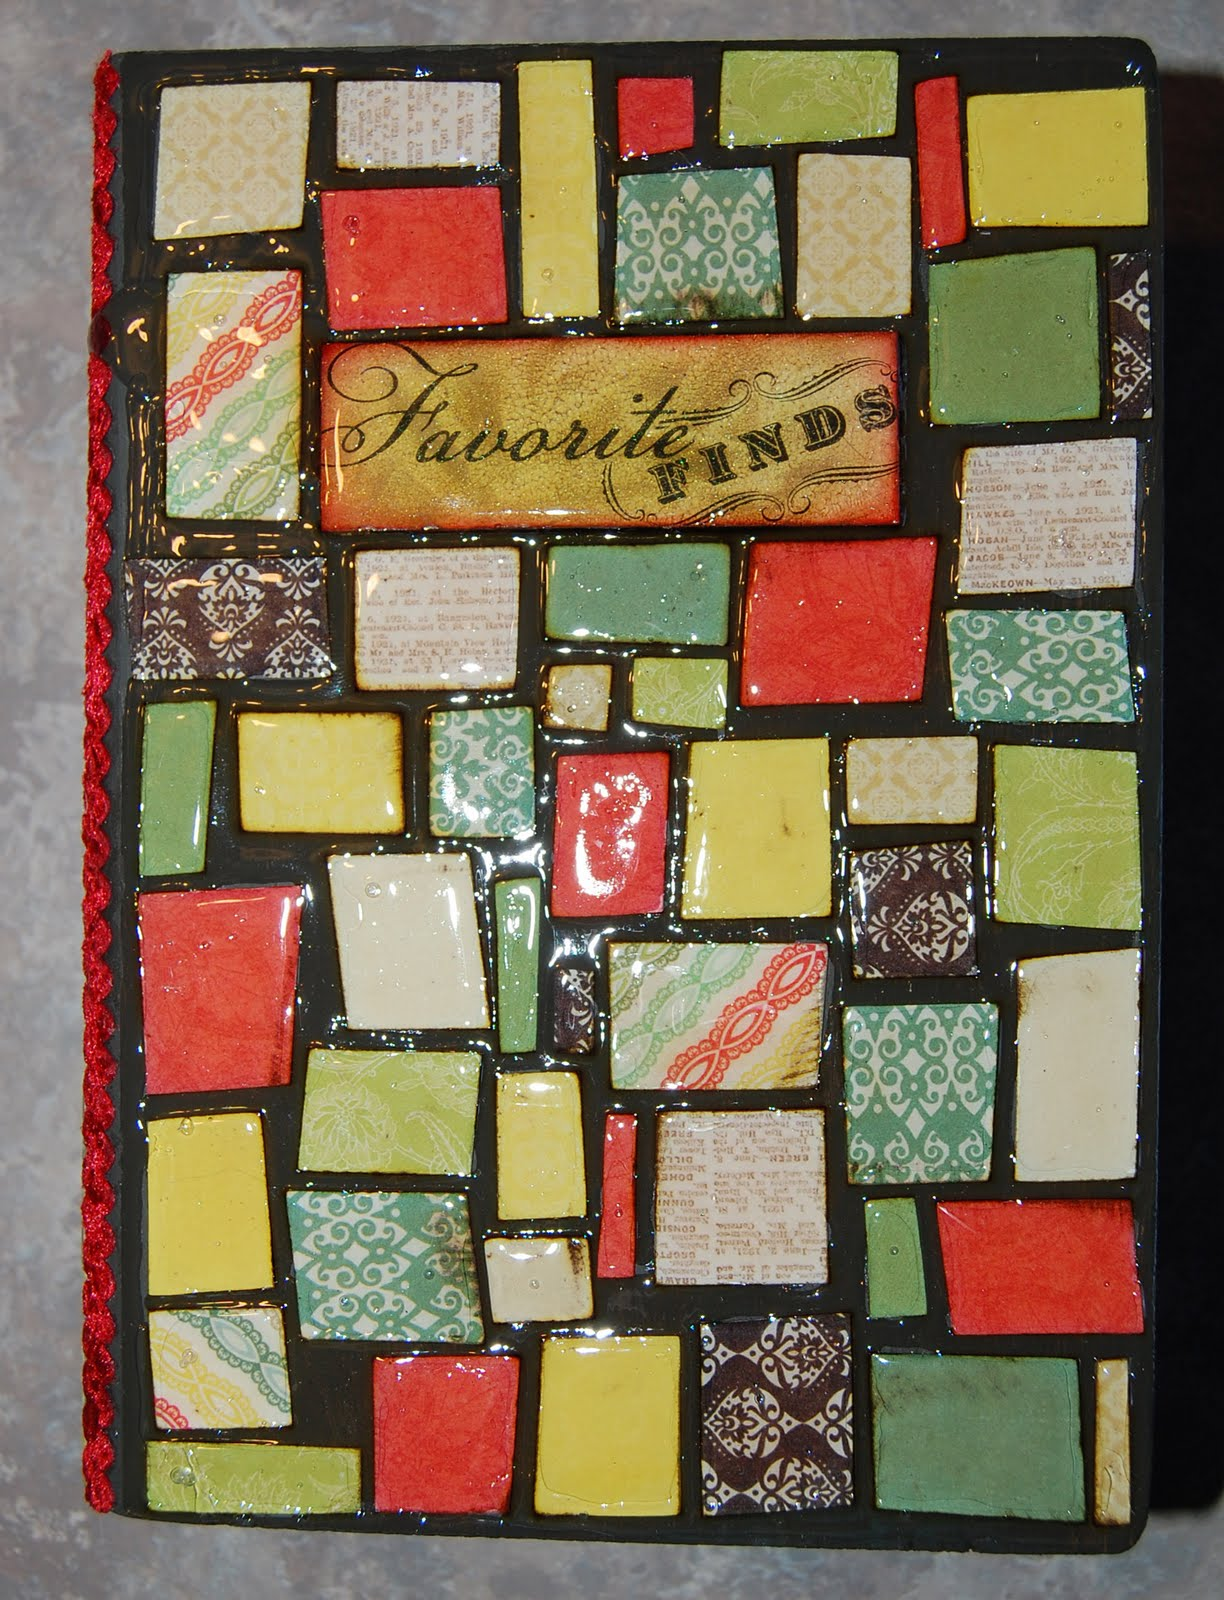 Remember The Mosaic Card I Posted Here A Few Days Ago Well This Is Original Project That Had Cut All Those Pieces For